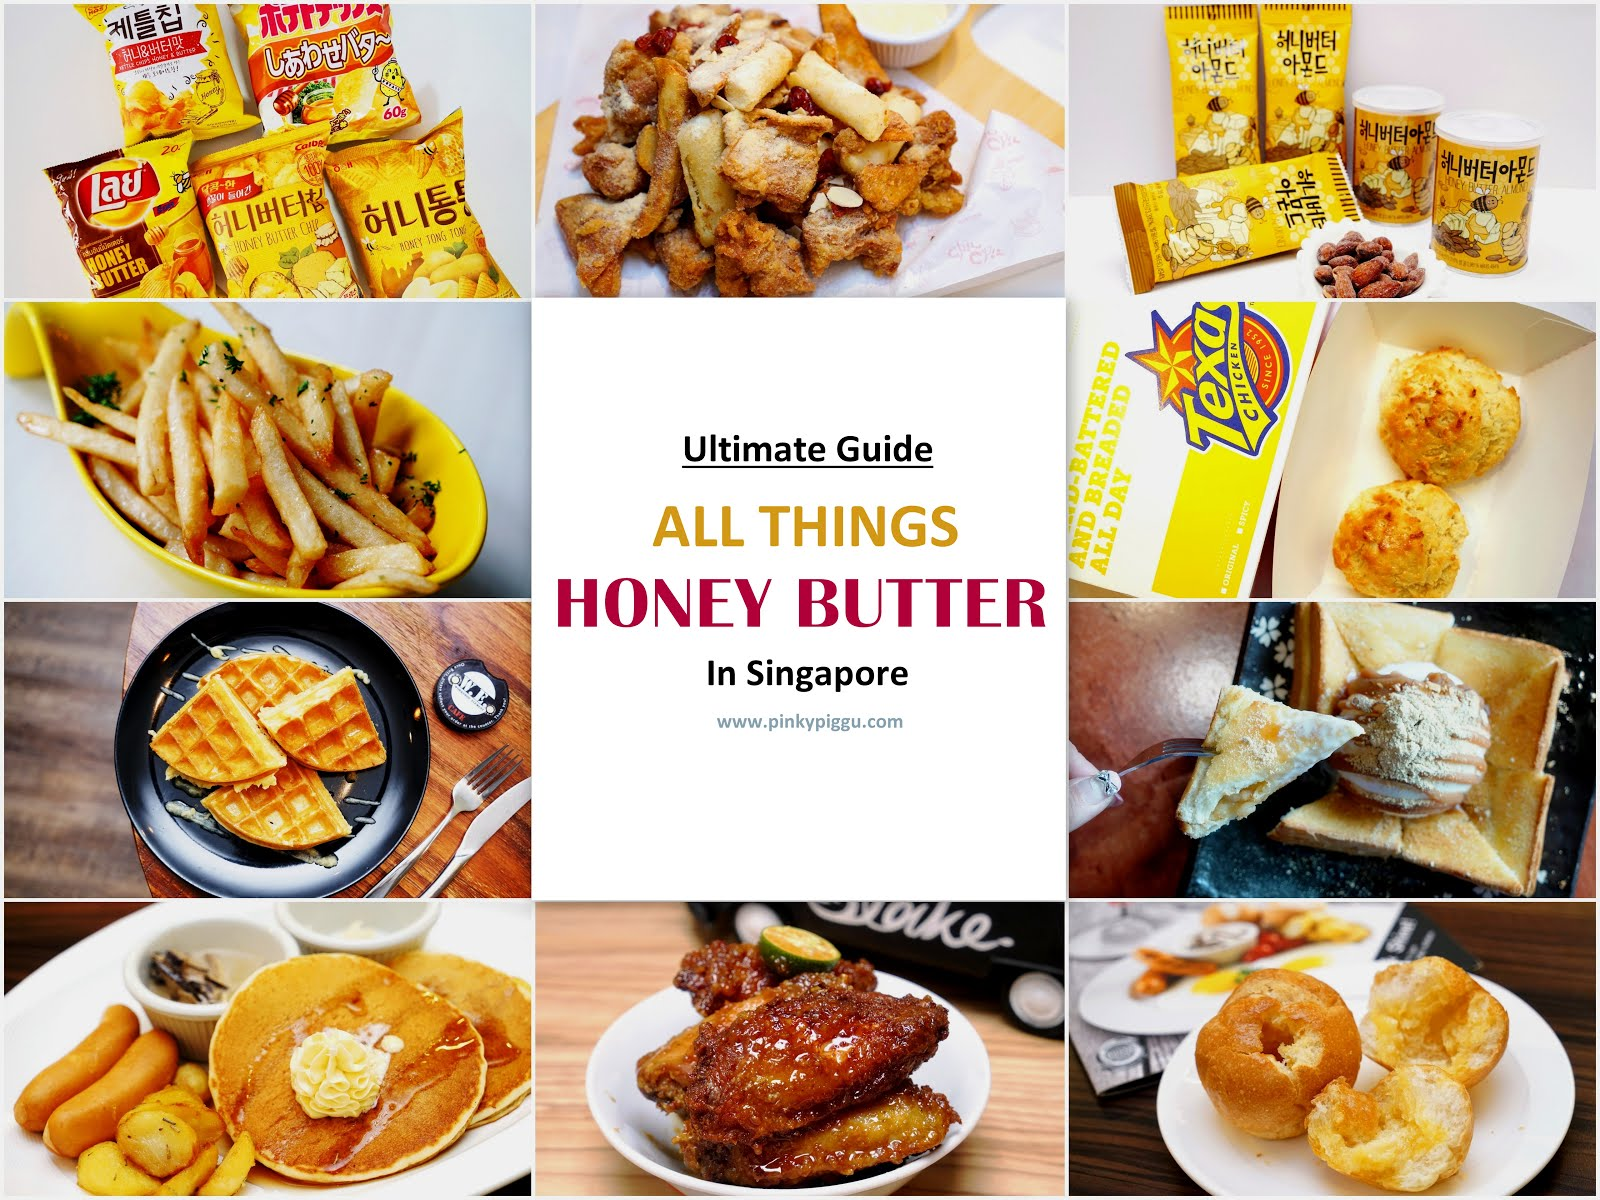 Ultimate Guide To All Things HONEY BUTTER In Singapore!